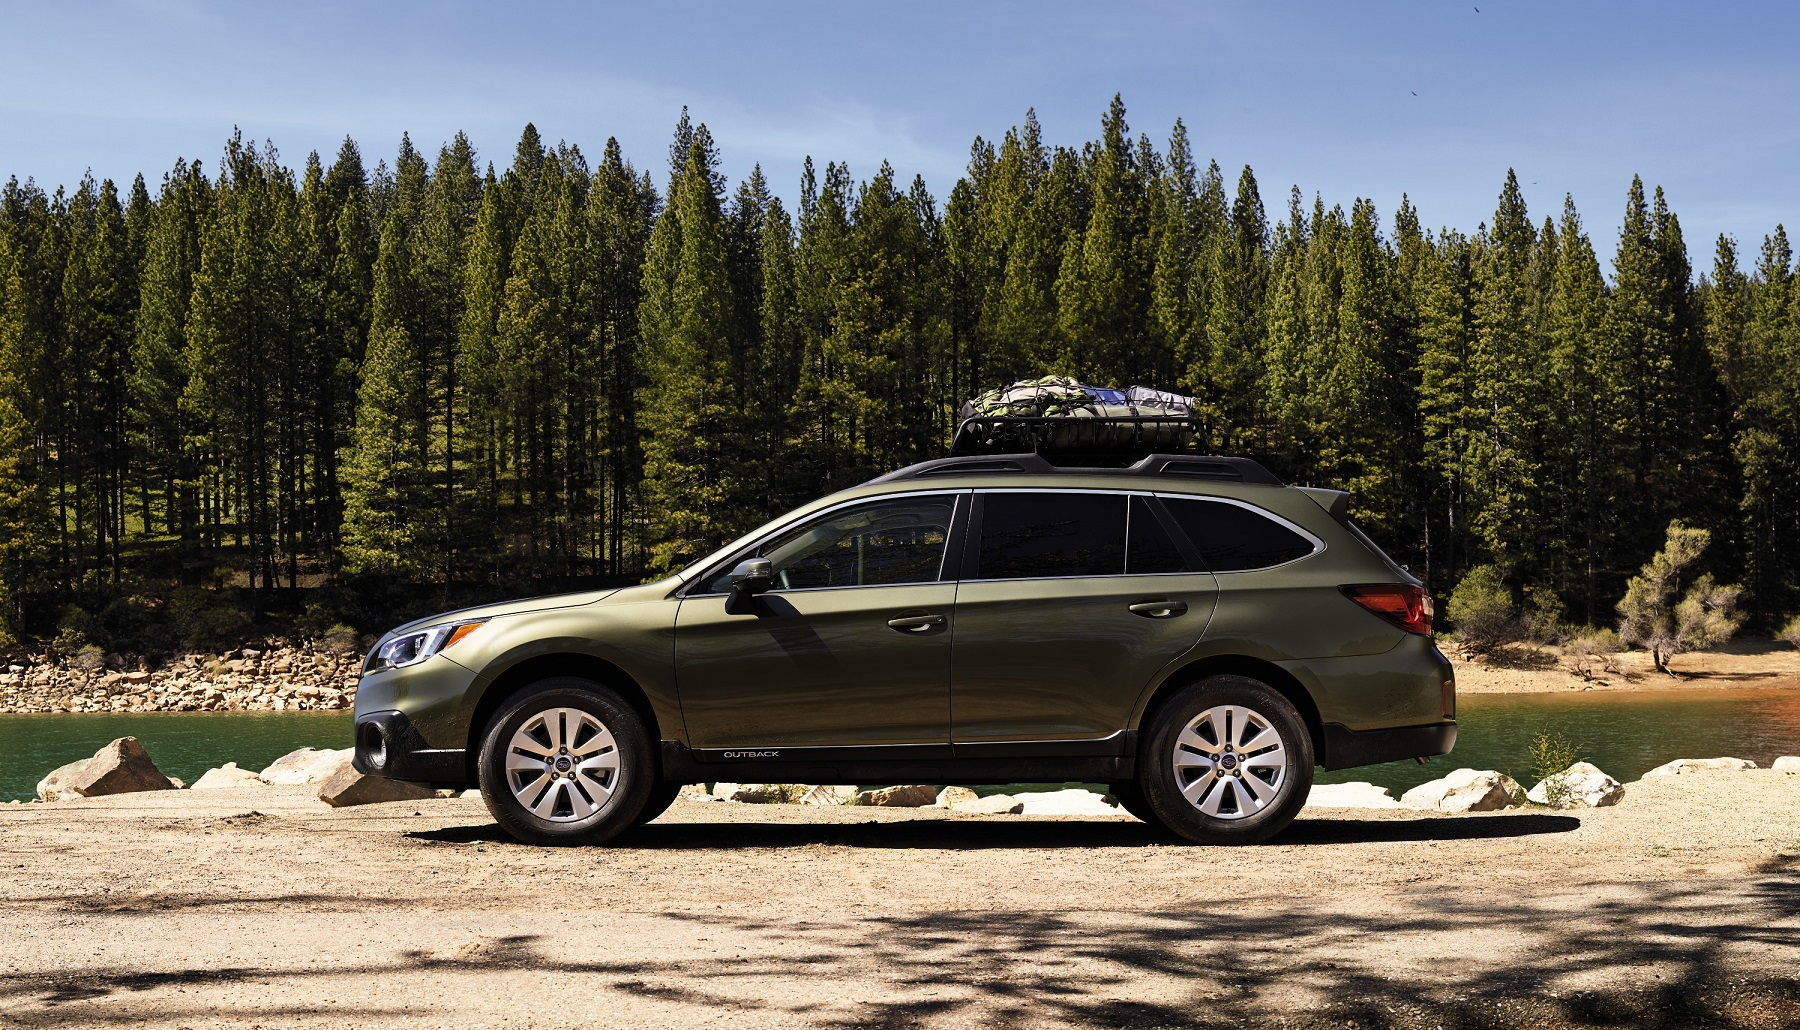 2017 subaru outback a monument to success new on wheels groovecar. Black Bedroom Furniture Sets. Home Design Ideas